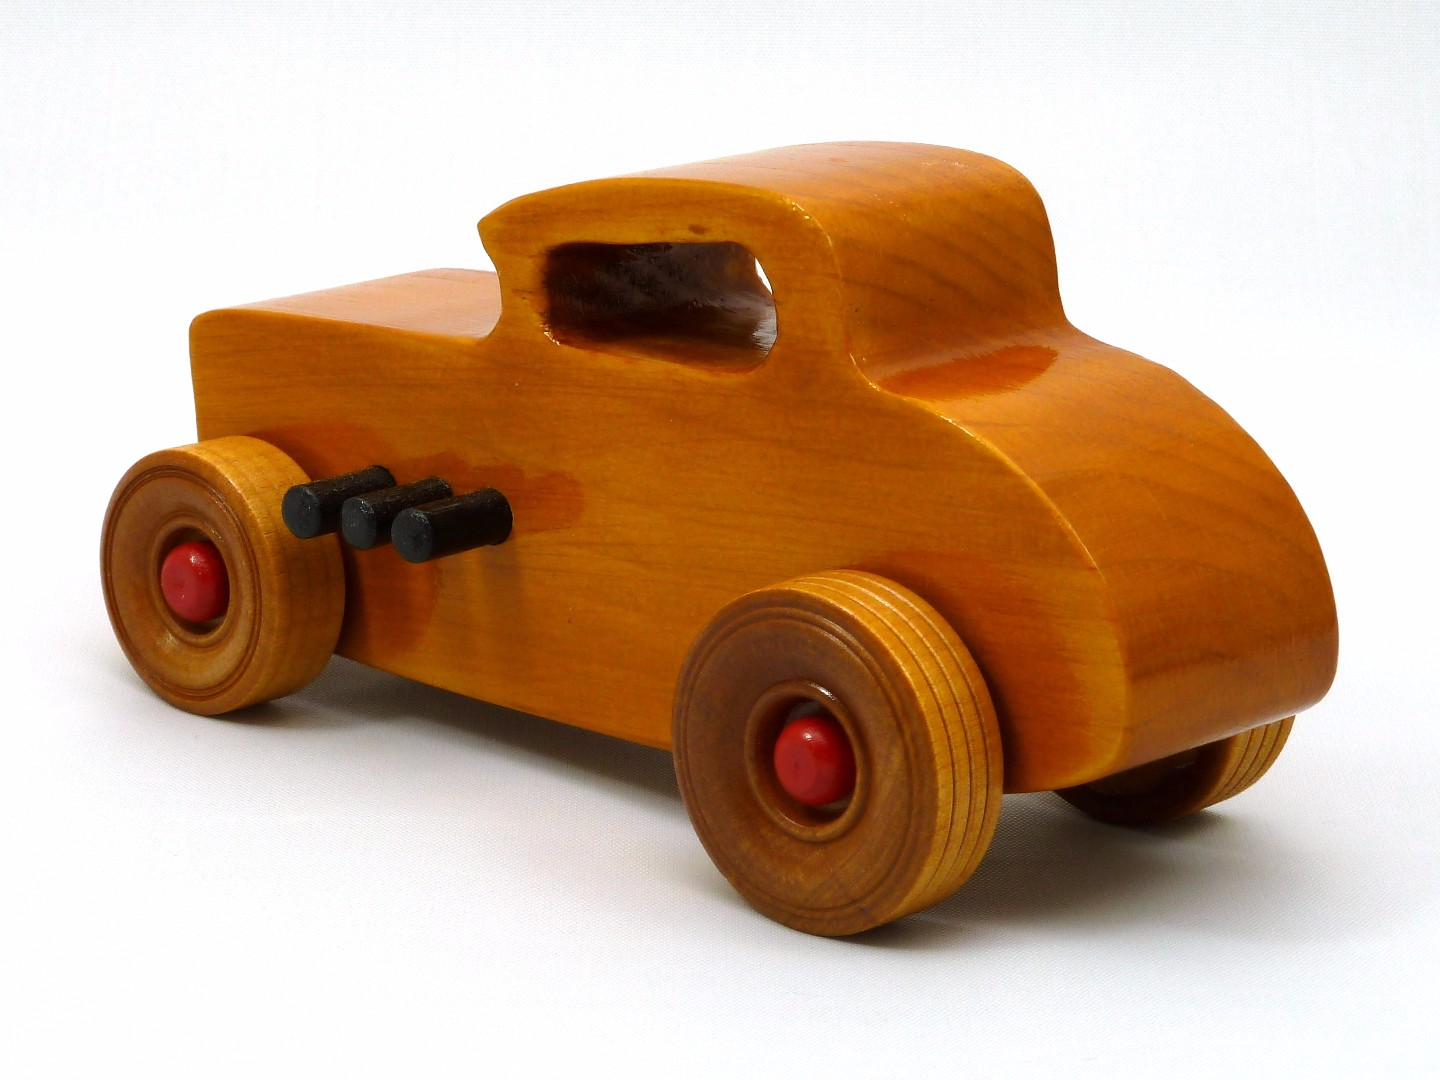 20170902-171530 Wooden Toy Car - Hot Rod Freaky Ford - 32 Deuce Coupe - Pine - Amber Shellac - Red.jpg